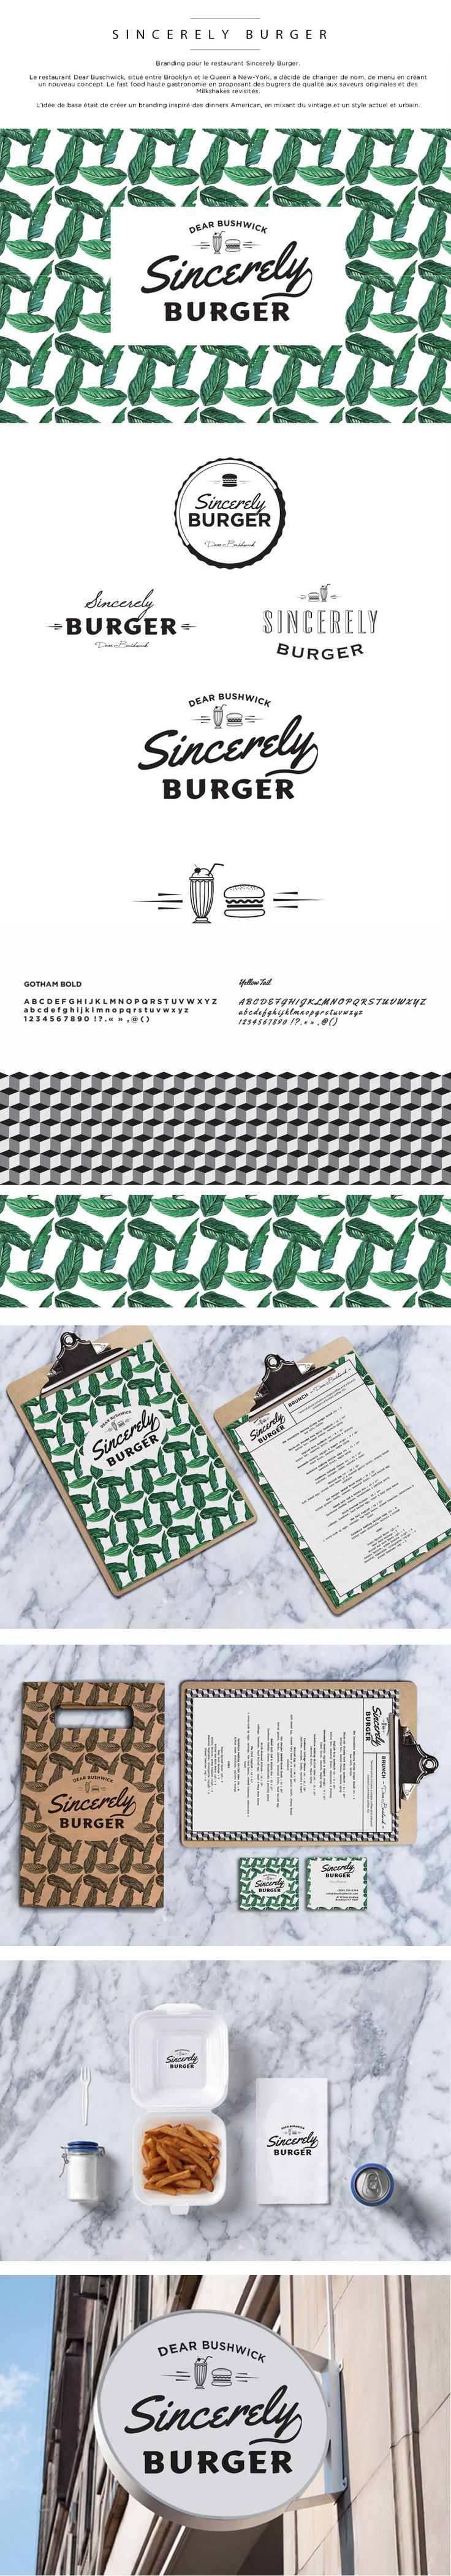 Sincerely Burger - Hello L-A Branding - identité visuelle - restaurant - burger -New-York-Brooklyn-Bushwick- logo - vintage - retro - menu - design - business - card - pattern - palm